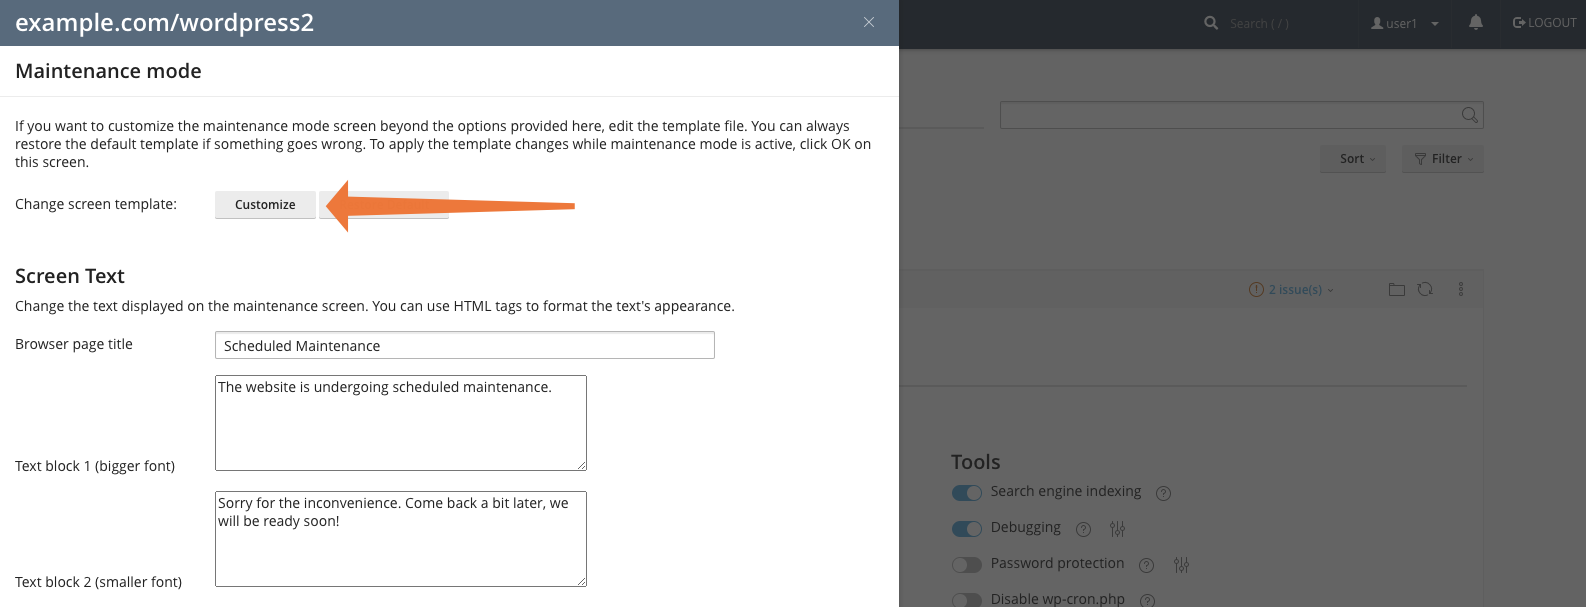 WordPress Toolkit for cPanel Customize Maintenance Mode